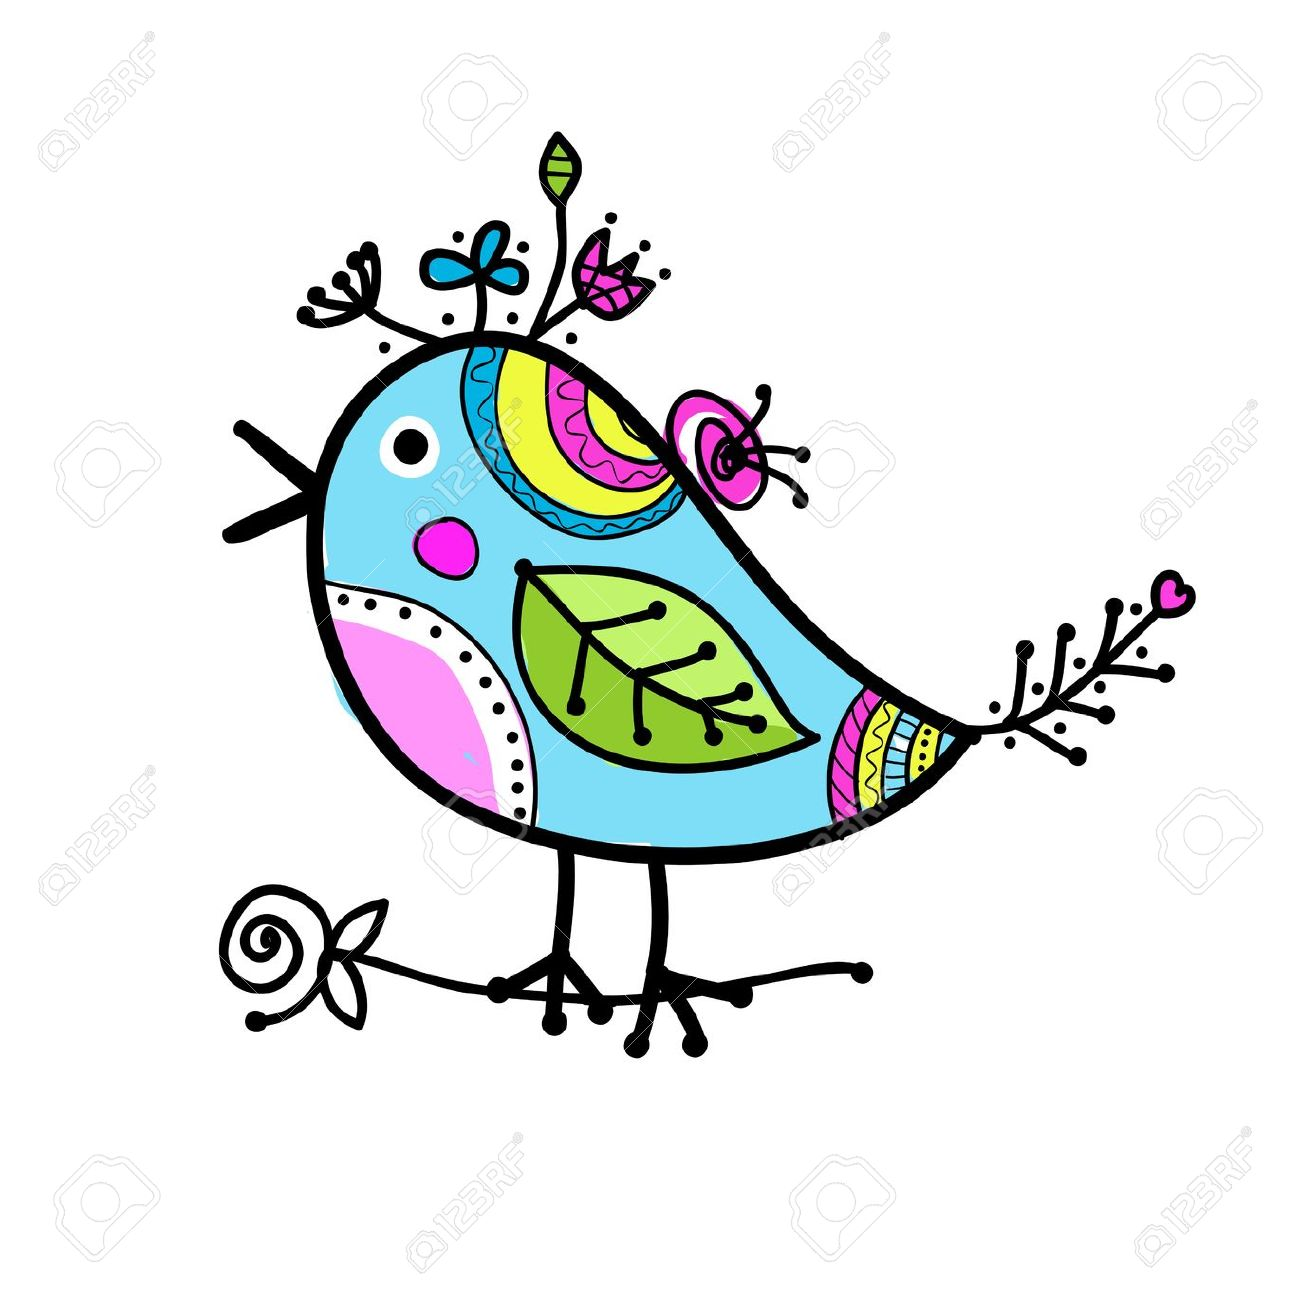 Sketch Of Funny Colorful Bird For Your Design Royalty Free.